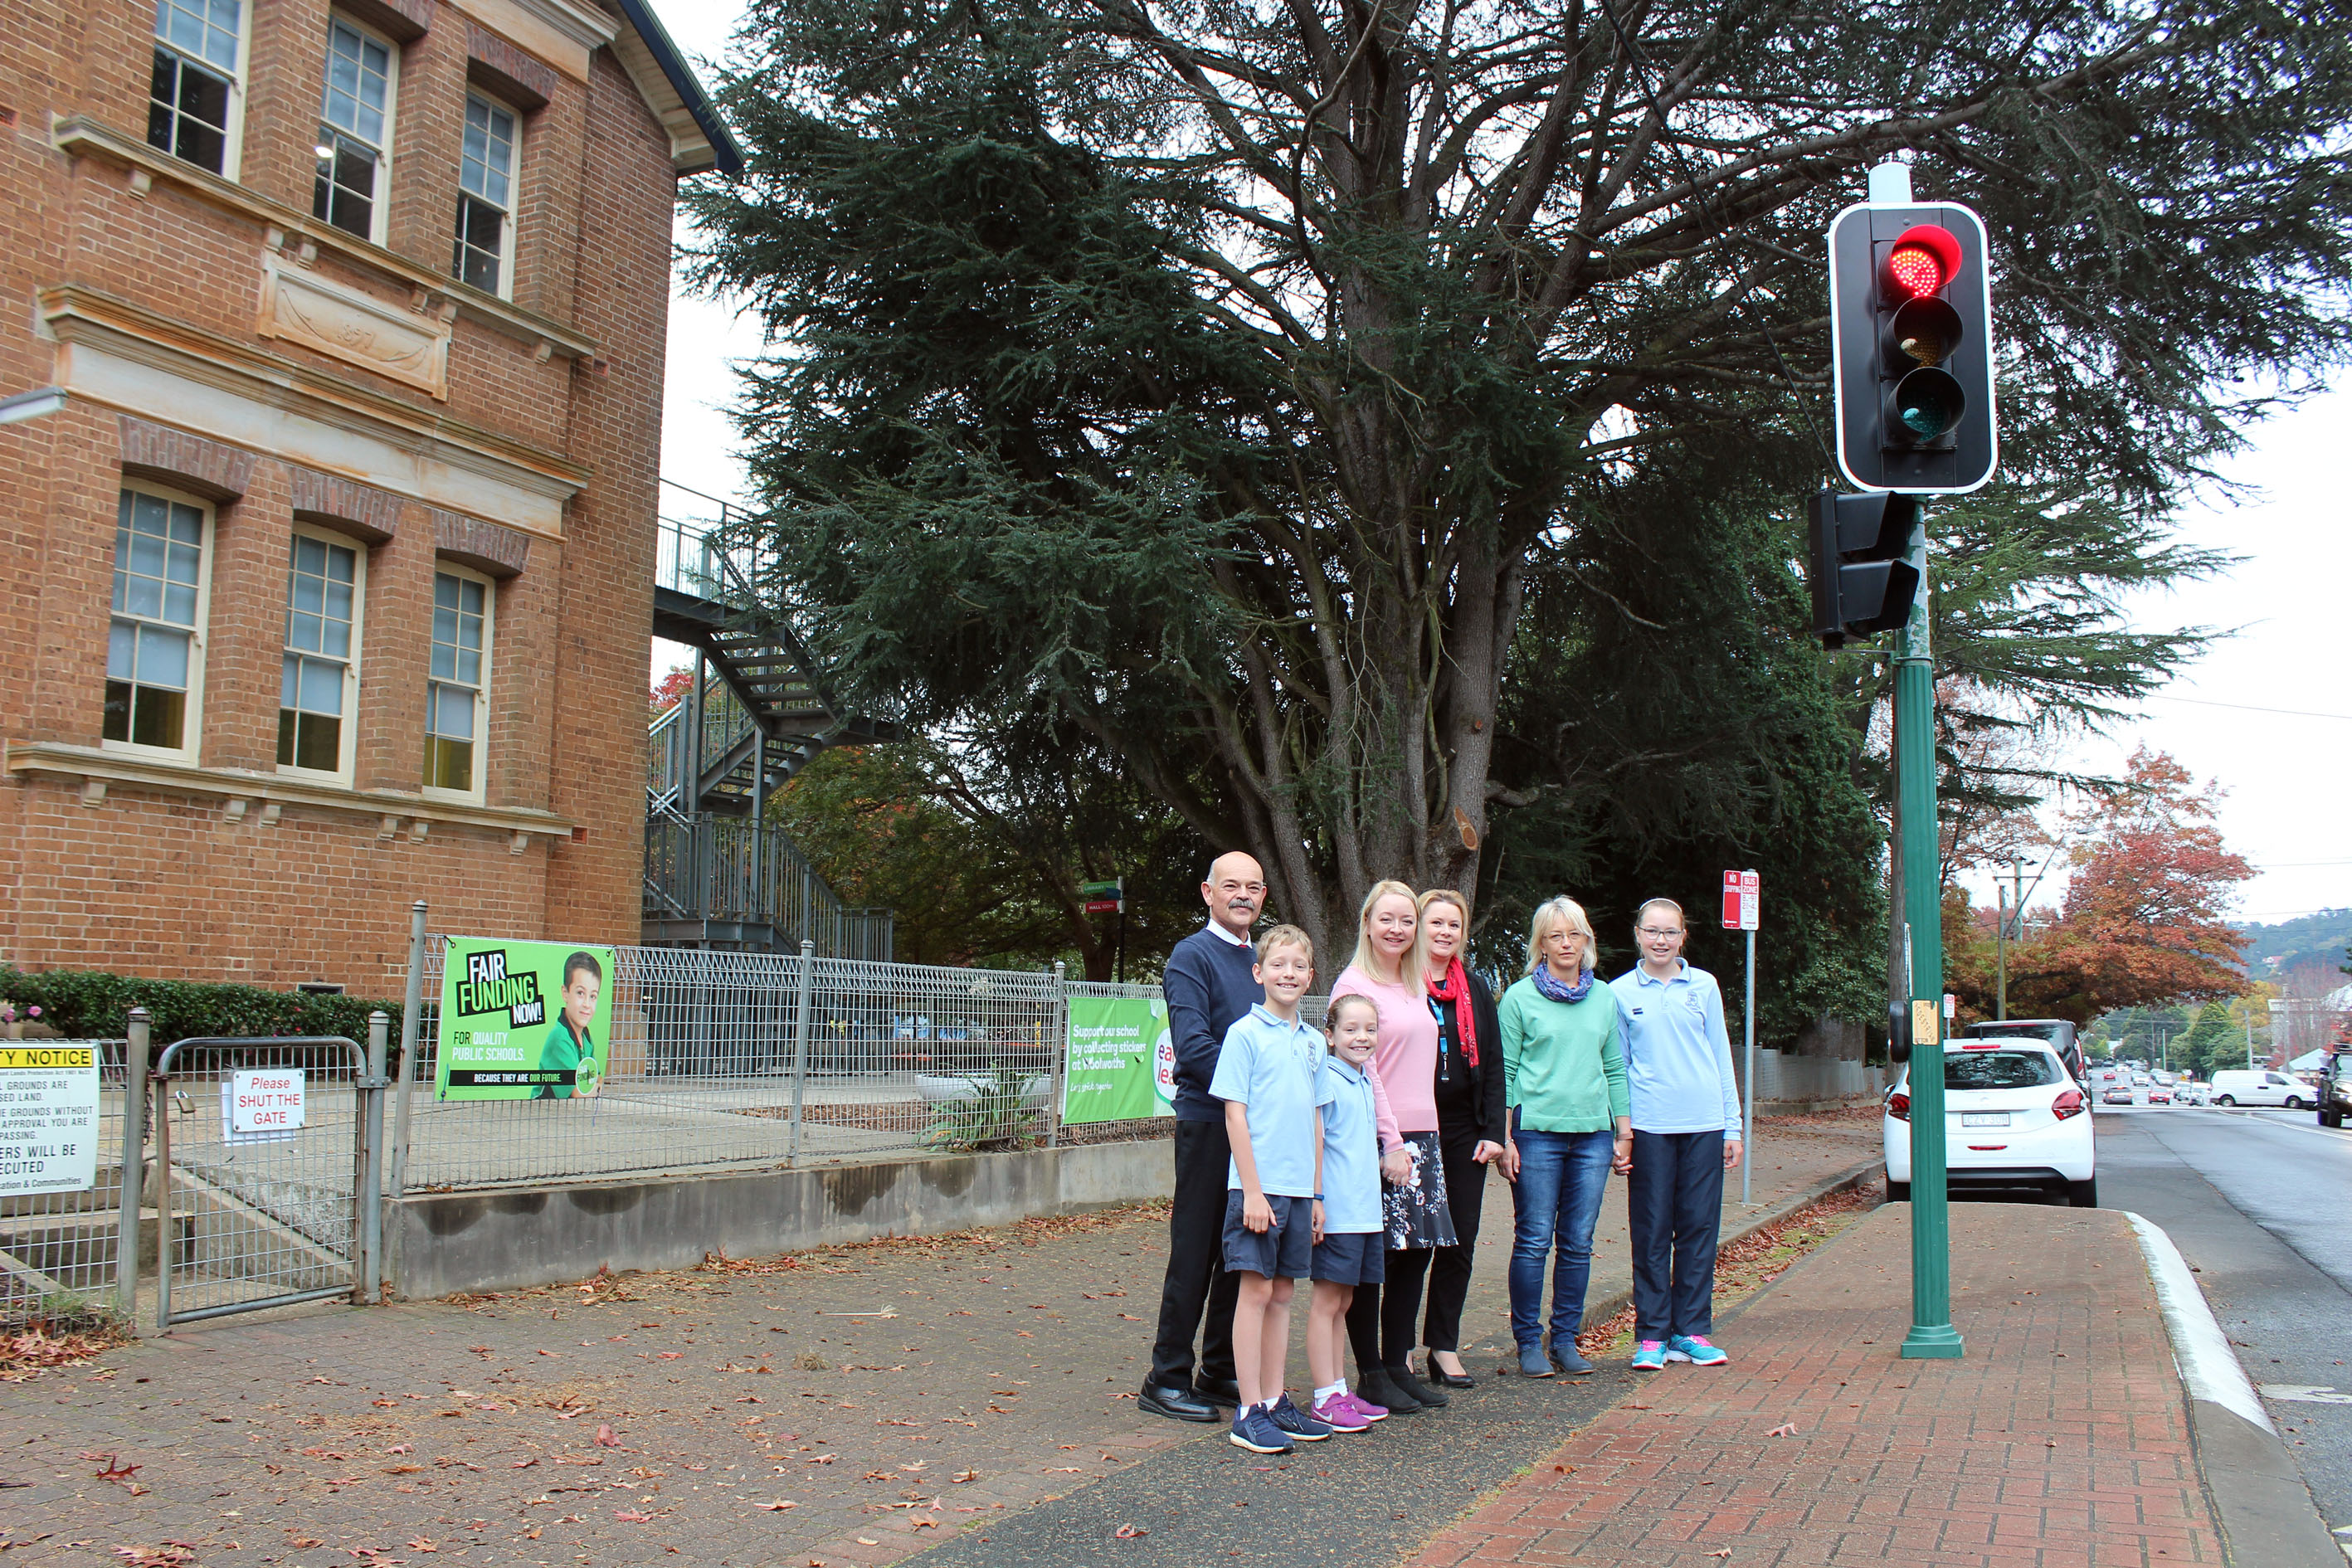 Council's Road Safety Officer with Principal Graham and concerned parents at the Bendooley Street traffic signals